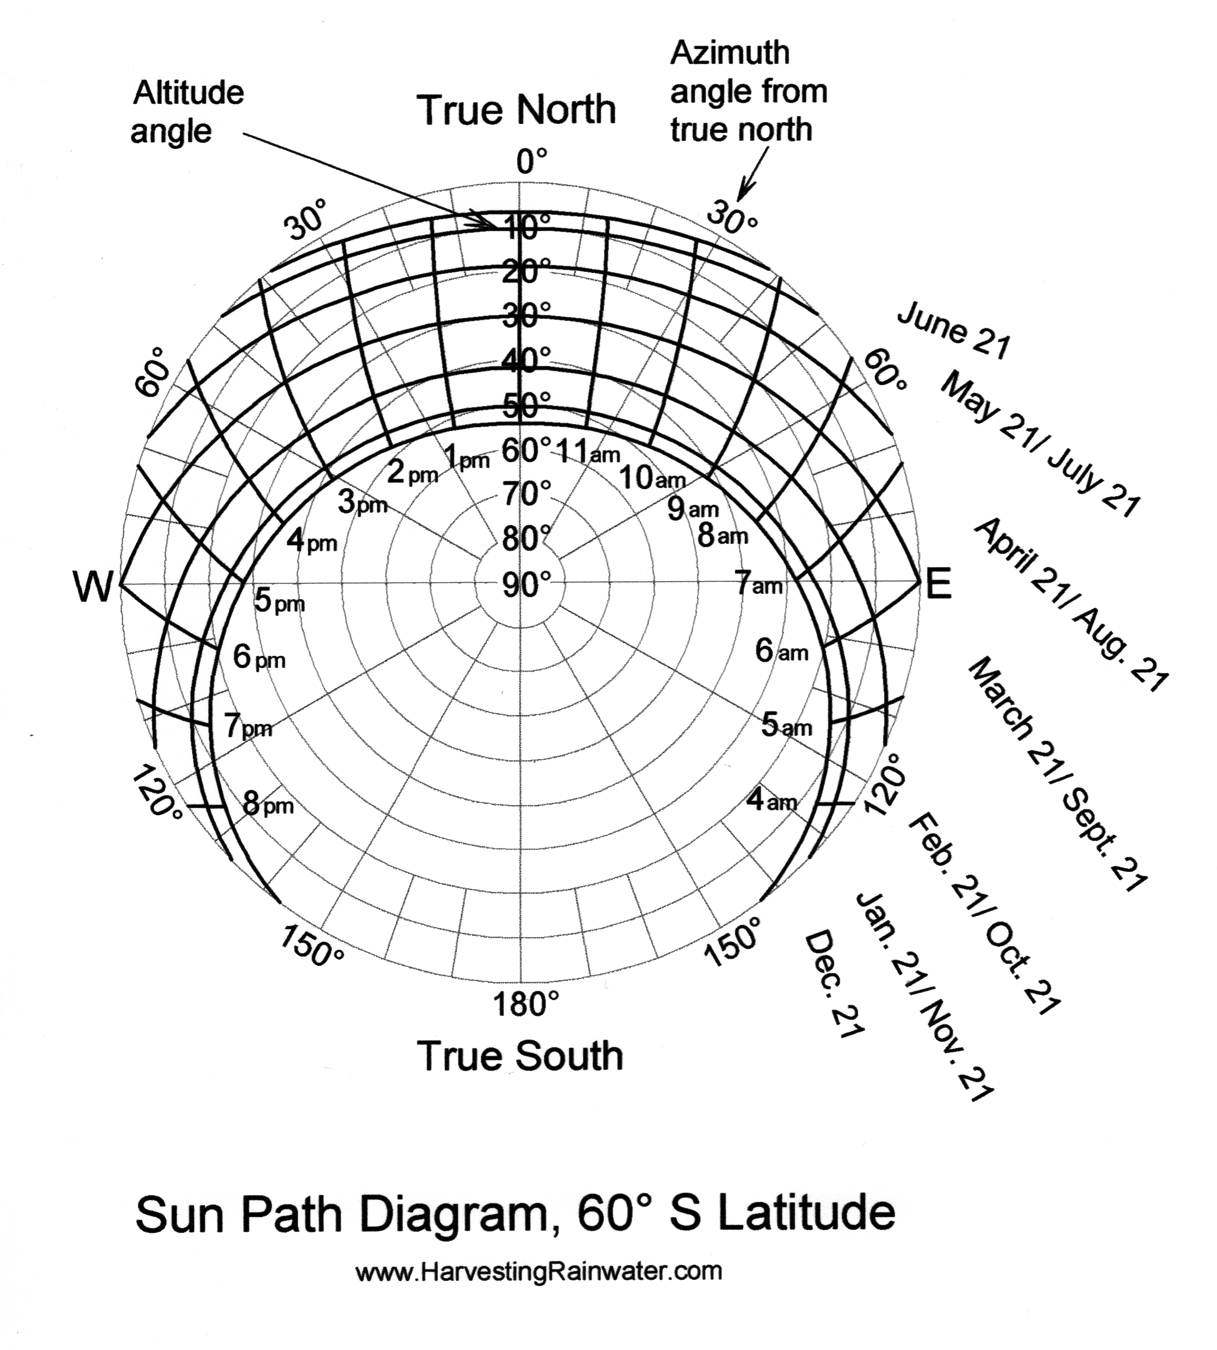 Sun Path Diagram 60o S Latitude